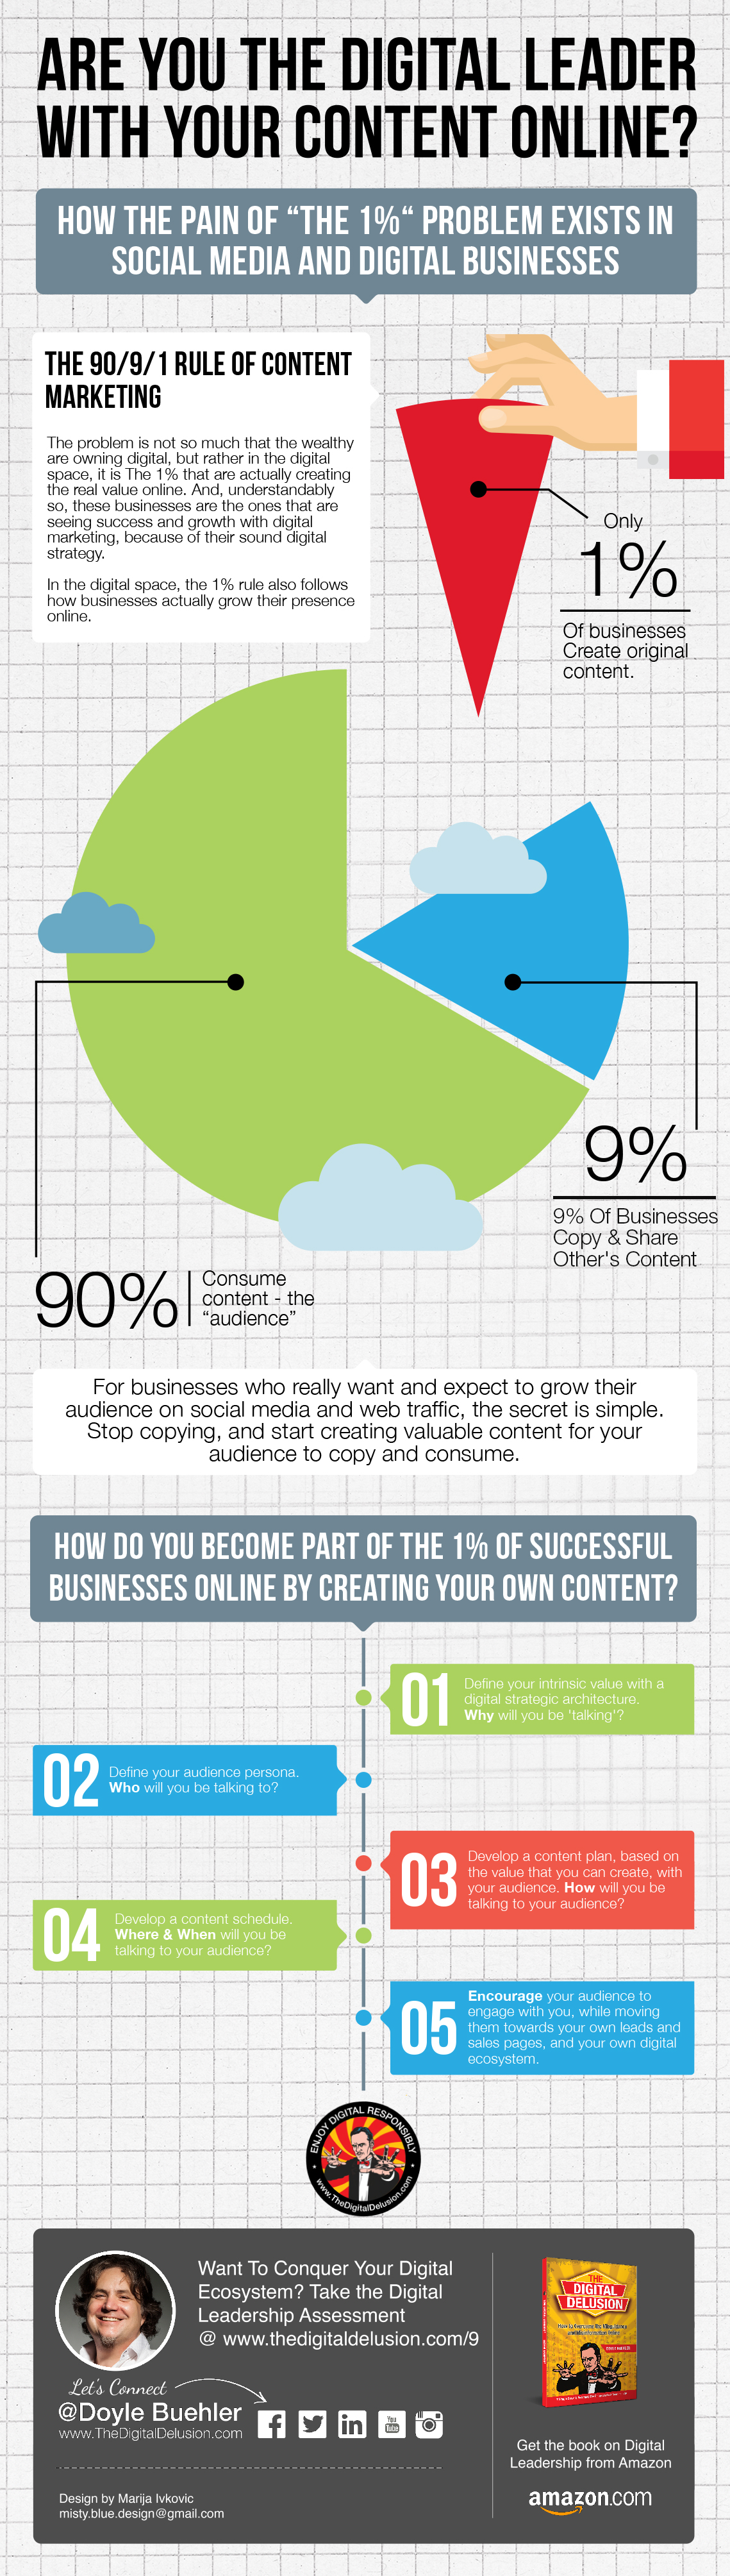 digital-marketing-strategy-infographic-doyle-buehler-digital-leadership-online-content-2015-05